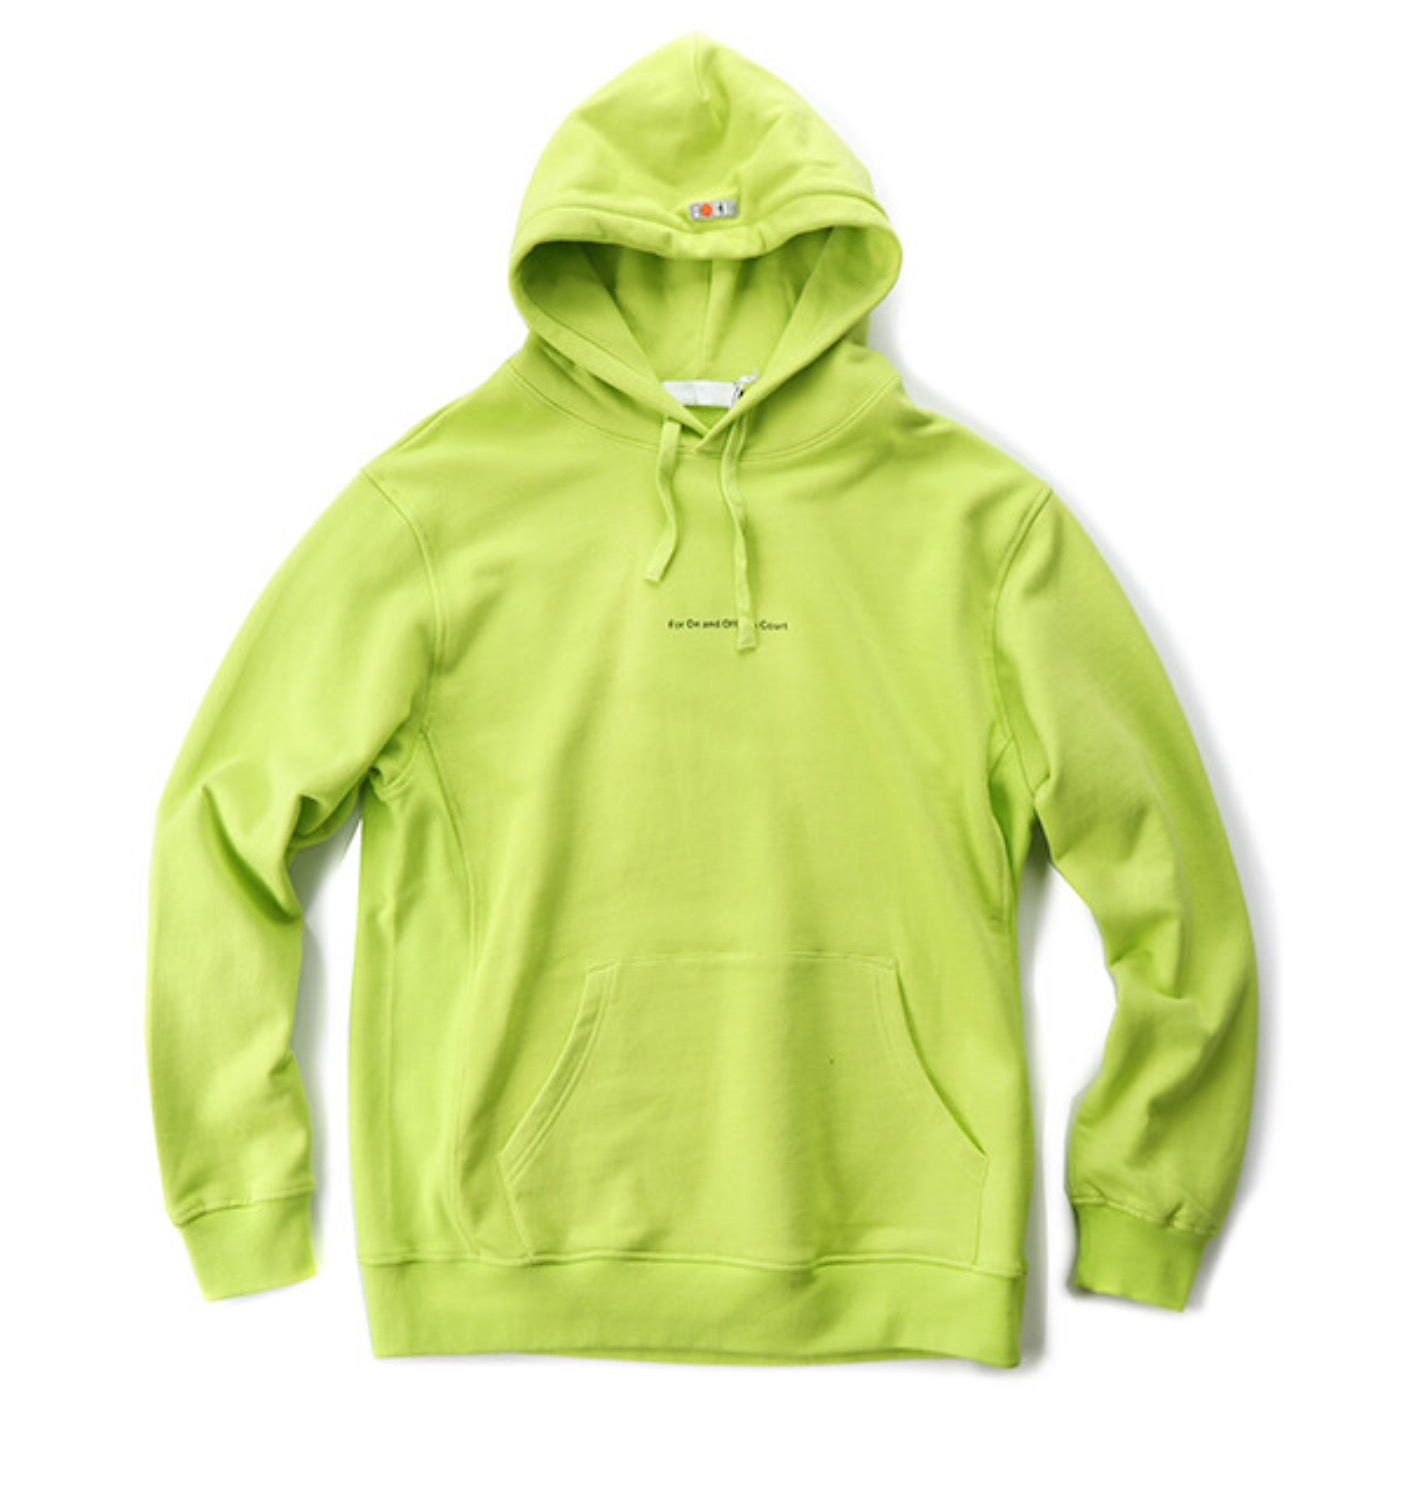 THE DIVER HOODIE LIME